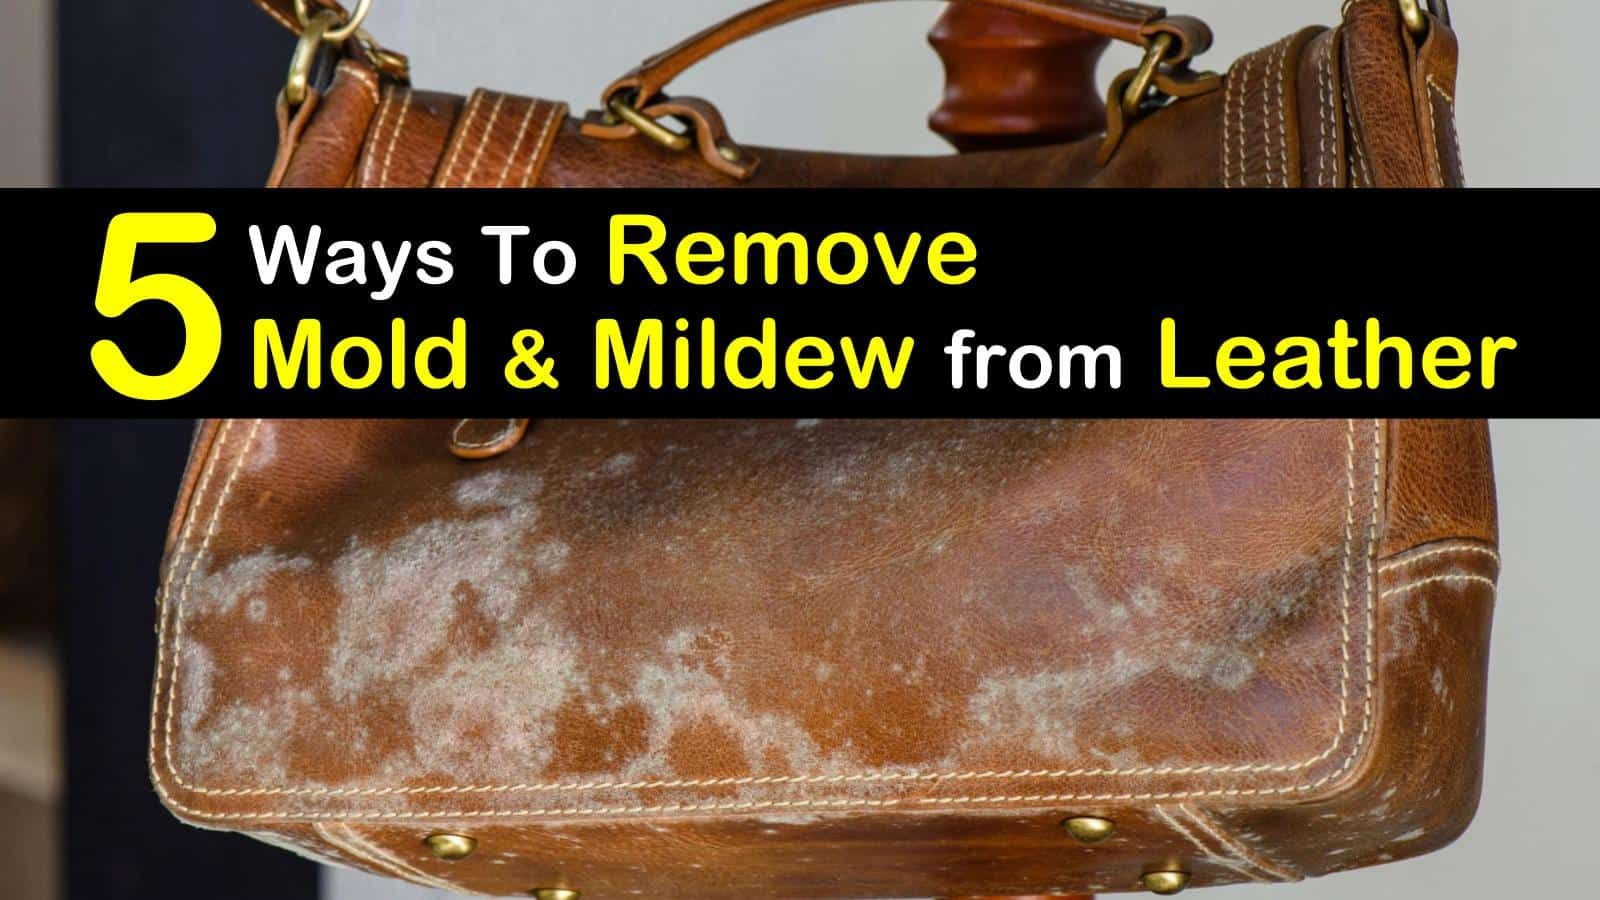 5 Quick & Easy Ways to Remove Mold from Leather (With